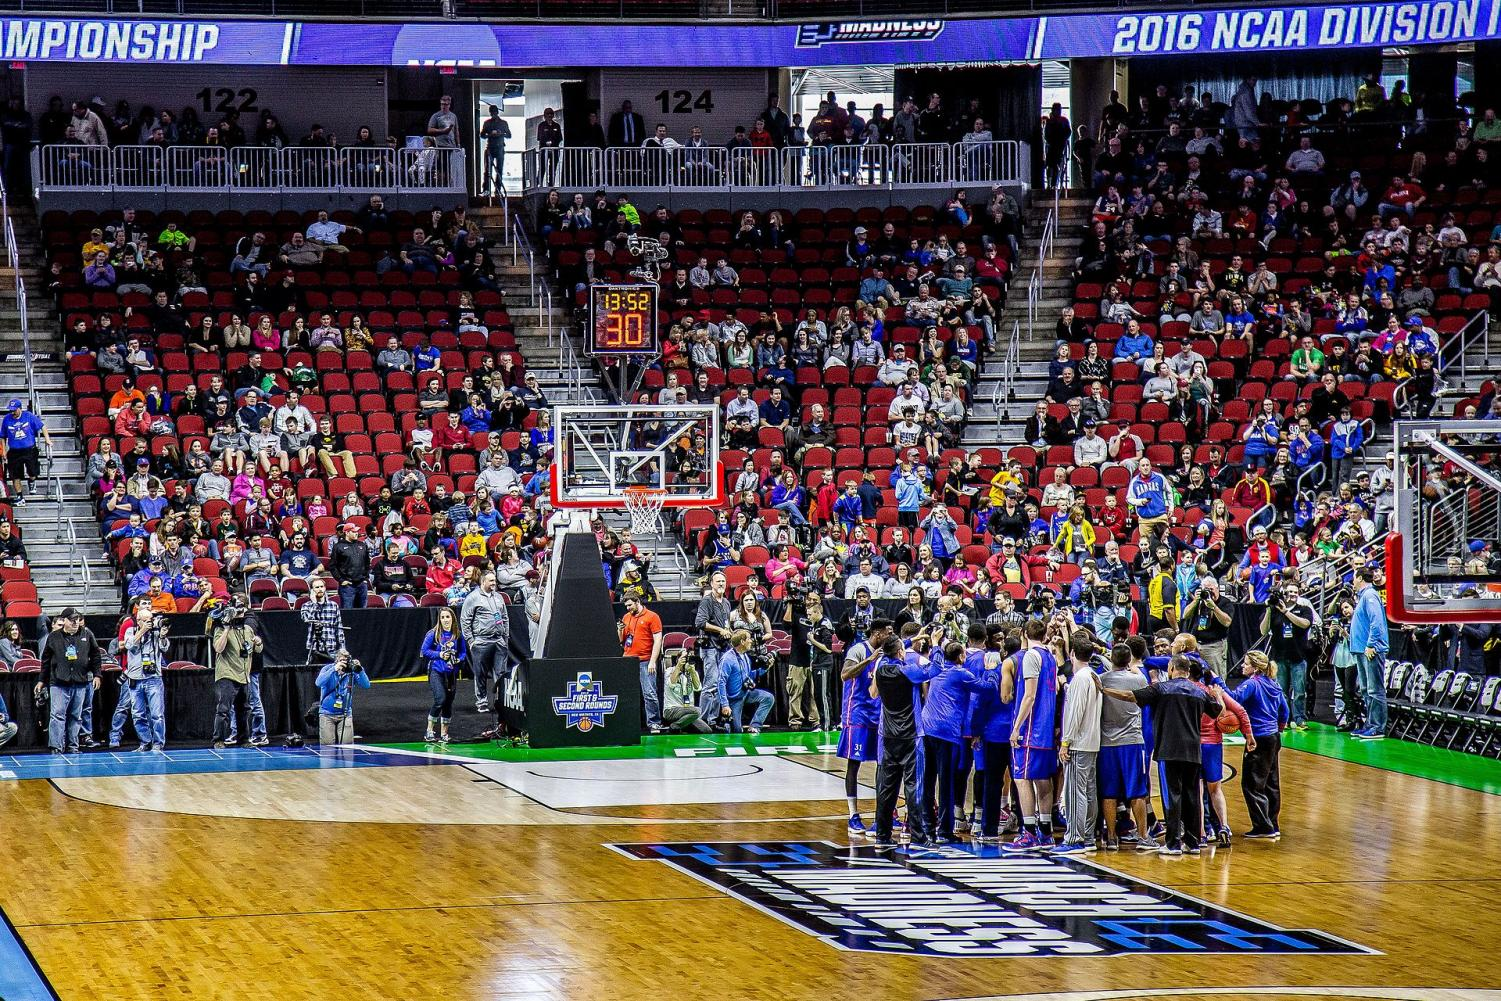 Players gather on the court before a March Madness basketball game